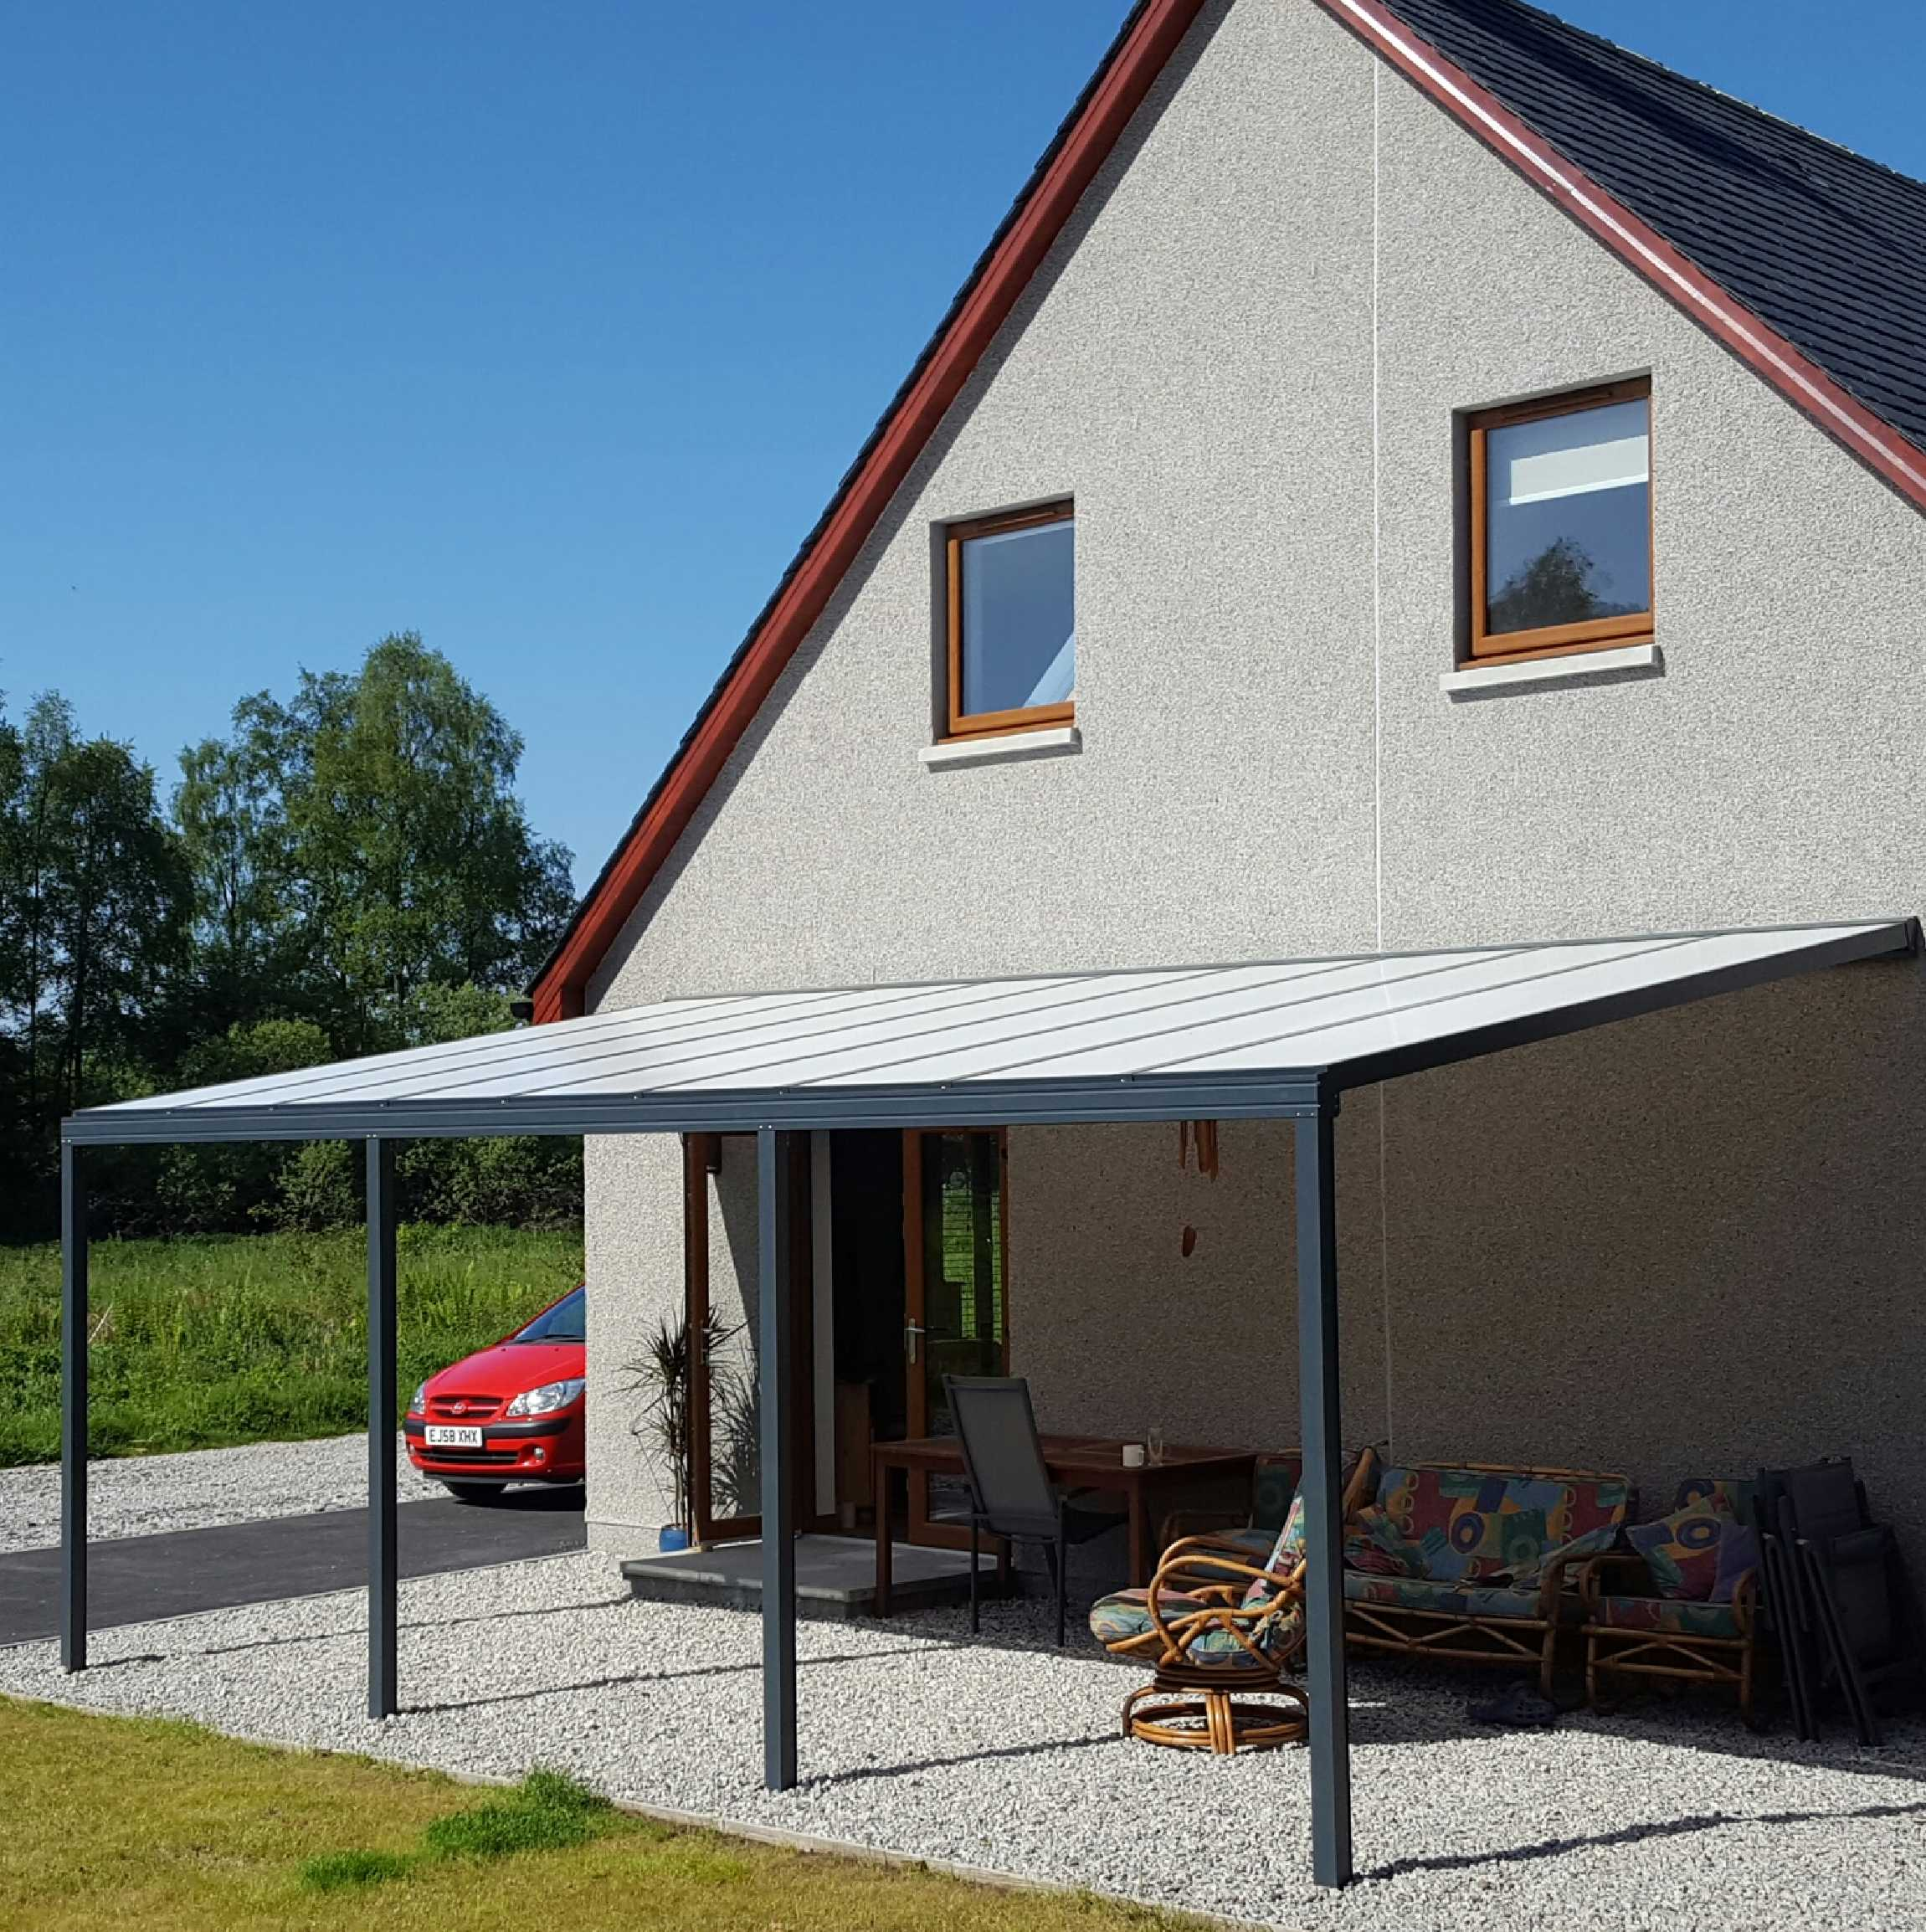 Great selection of Omega Smart Lean-To Canopy, Anthracite Grey, 16mm Polycarbonate Glazing - 6.0m (W) x 4.0m (P), (3) Supporting Posts